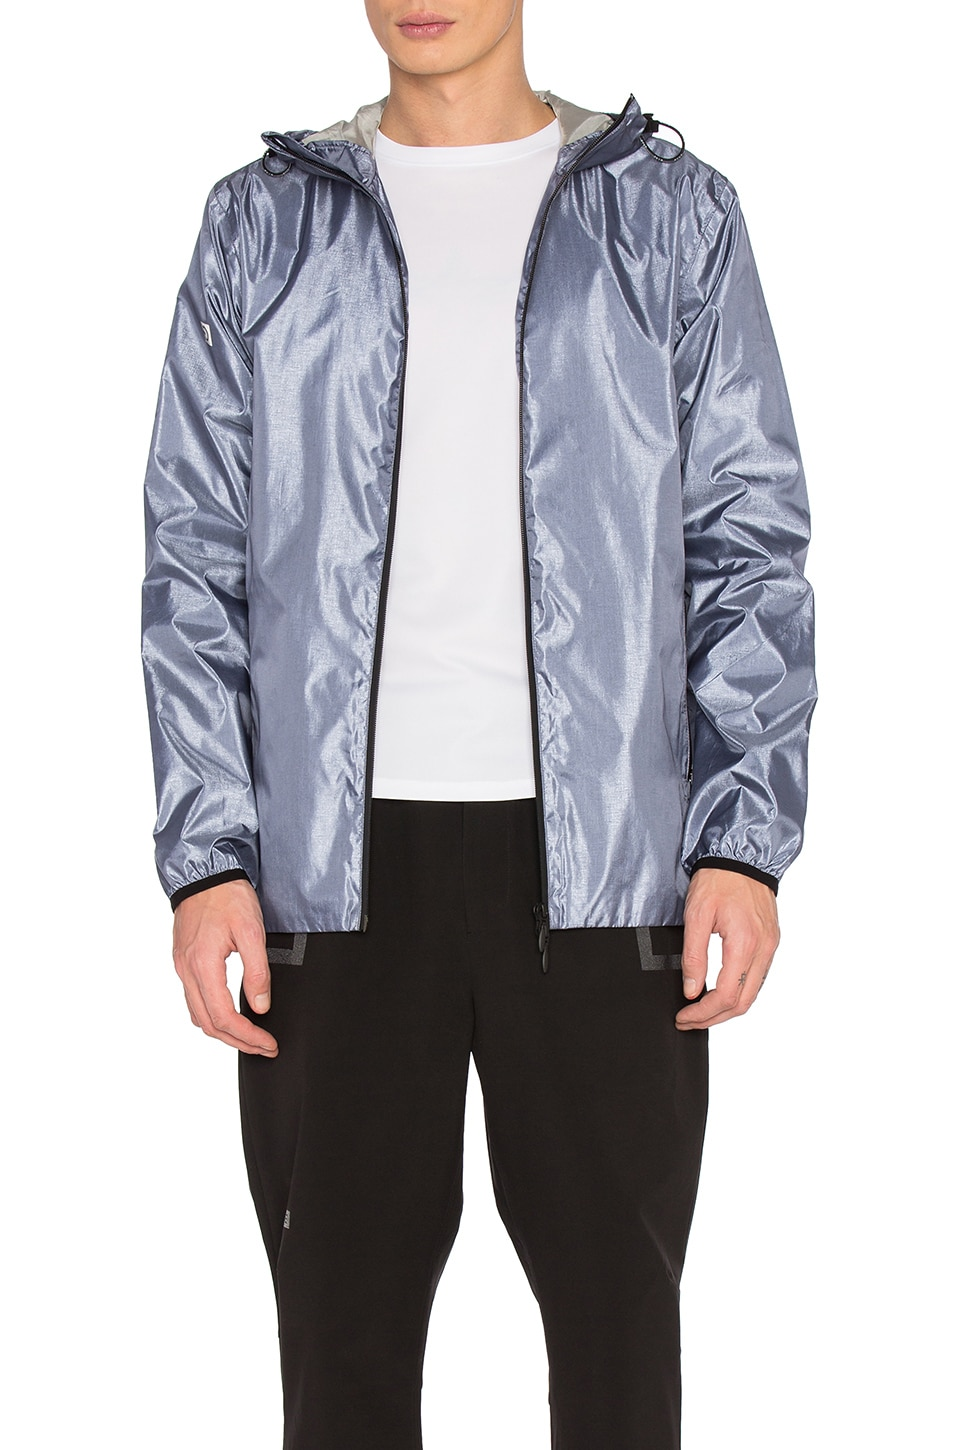 Pelli Shark Jacket by Dyne